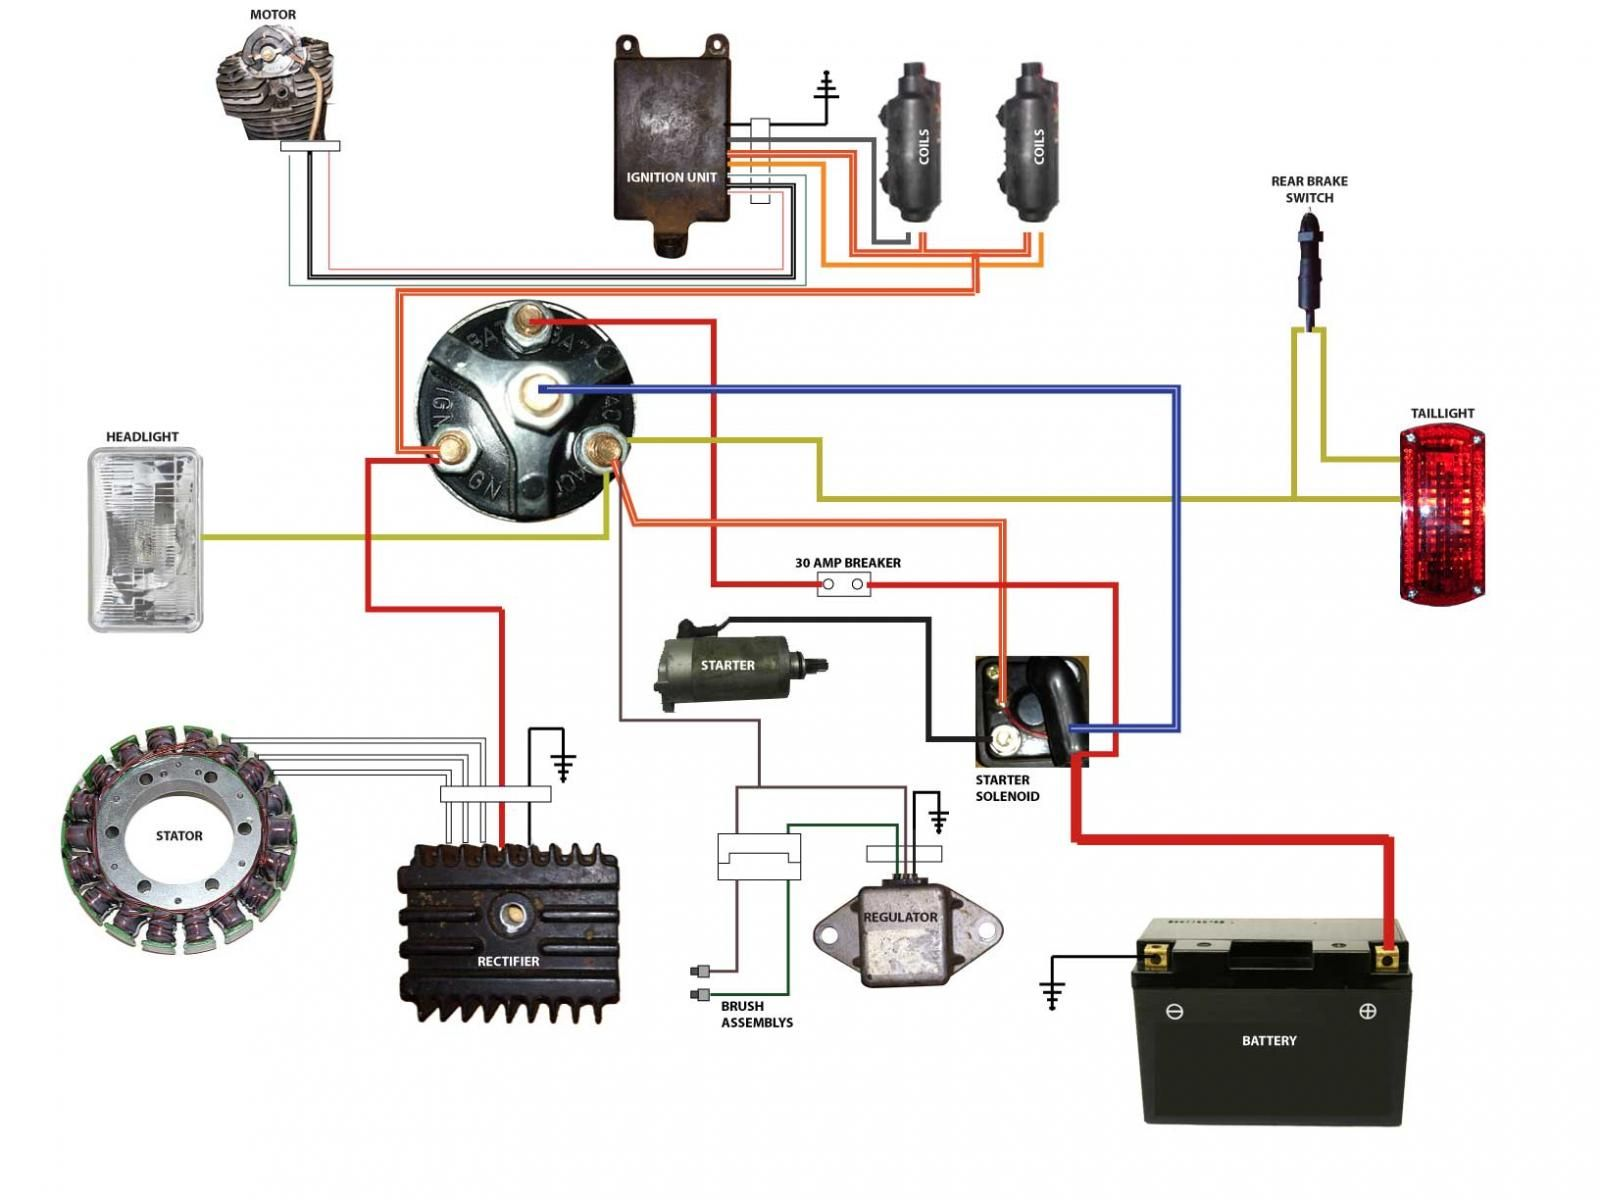 d72b6b9978ded4378b16620a38821410 simplified wiring diagram for xs400 cafe motorcycle wiring  at edmiracle.co